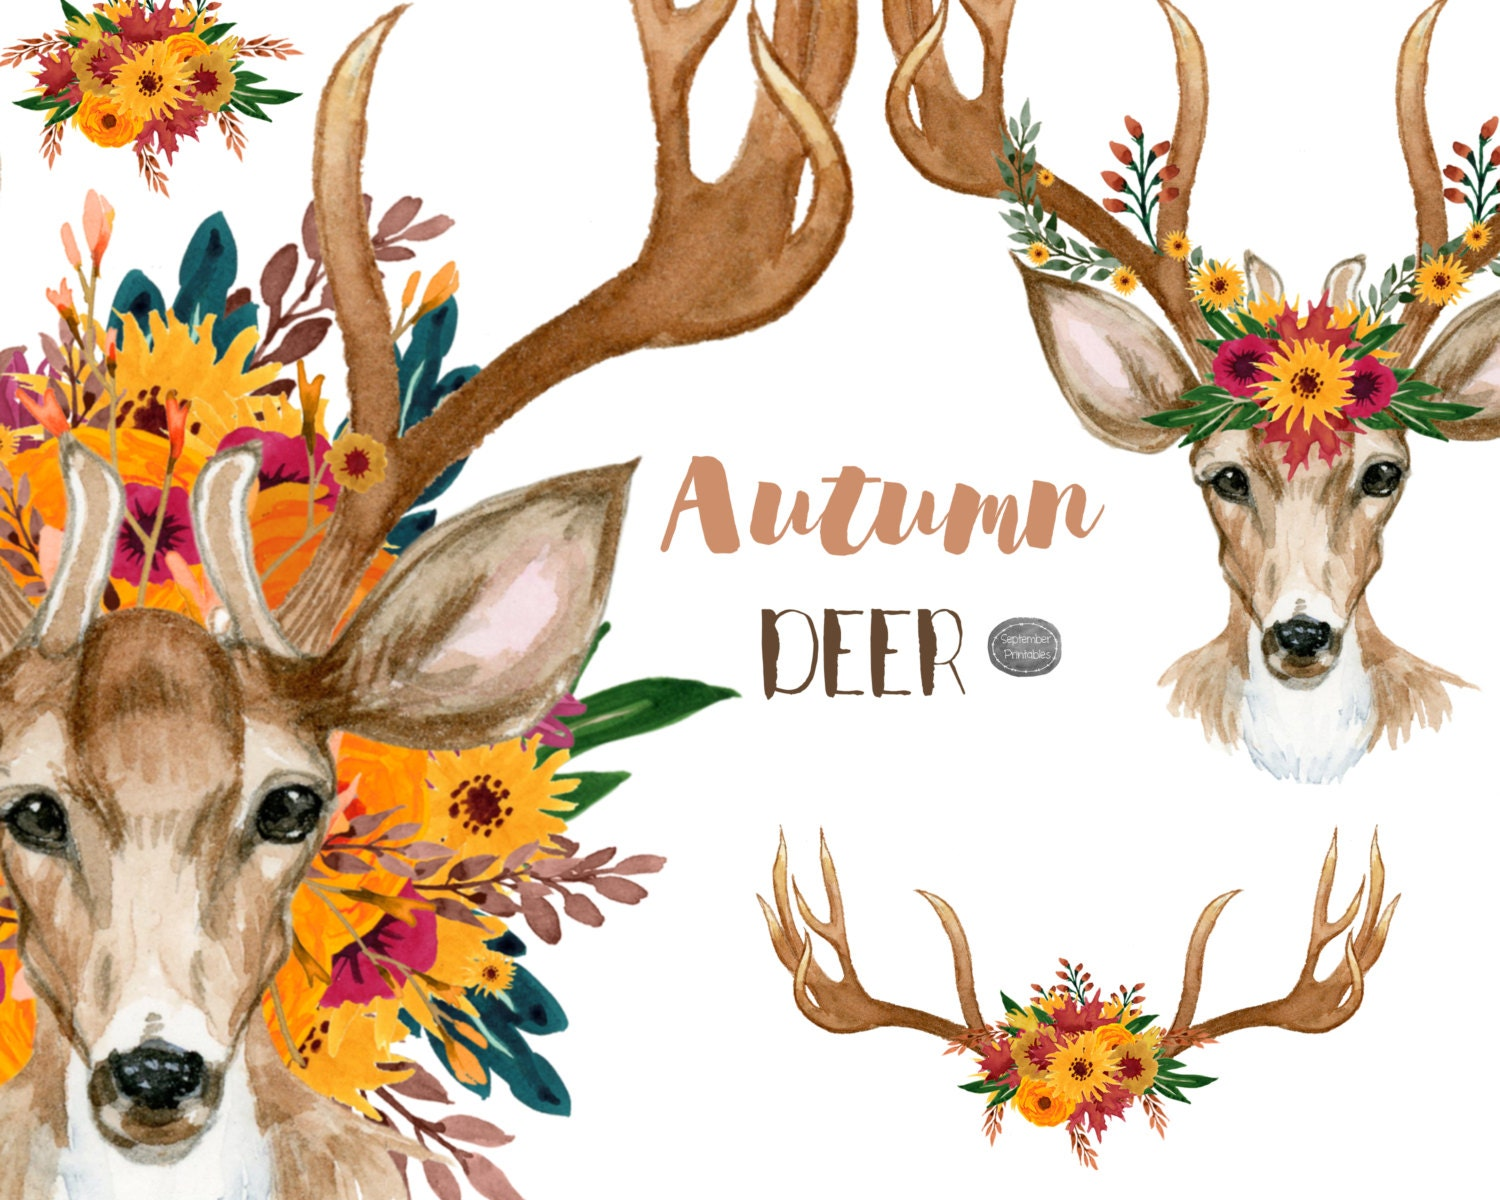 Autumn Deer and Floral Antlers Fall Clip Art Watercolor